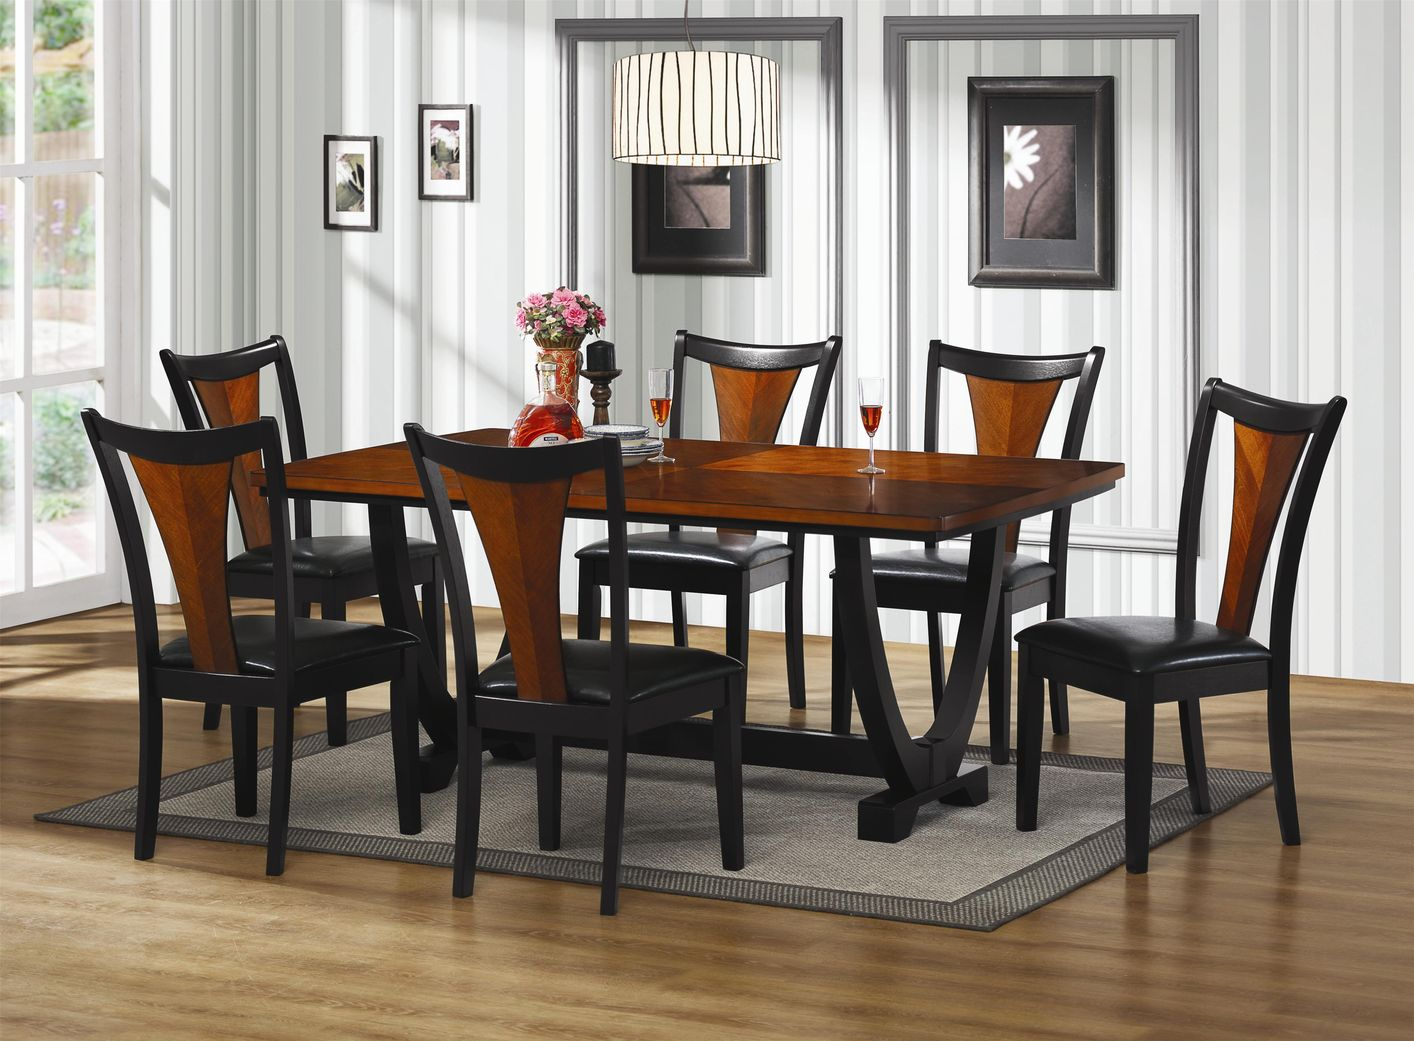 Coaster Boyer 102090 102092 Black Wood Dining Table Set In Los ...